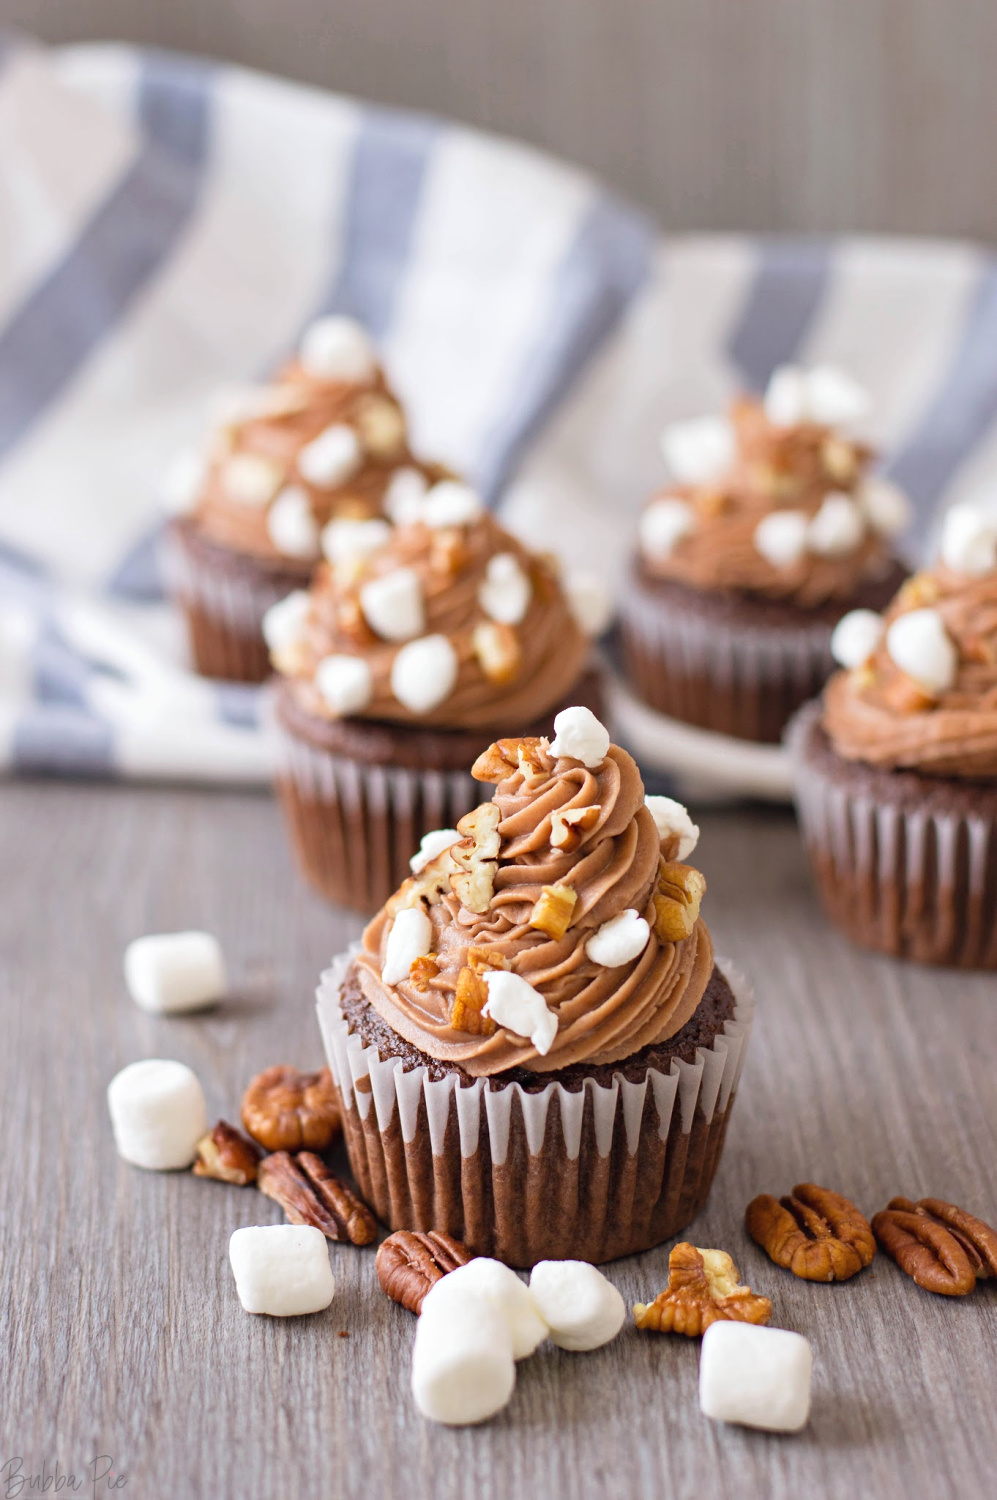 Rocky Road Cupcakes with Marshmallows and Pecans